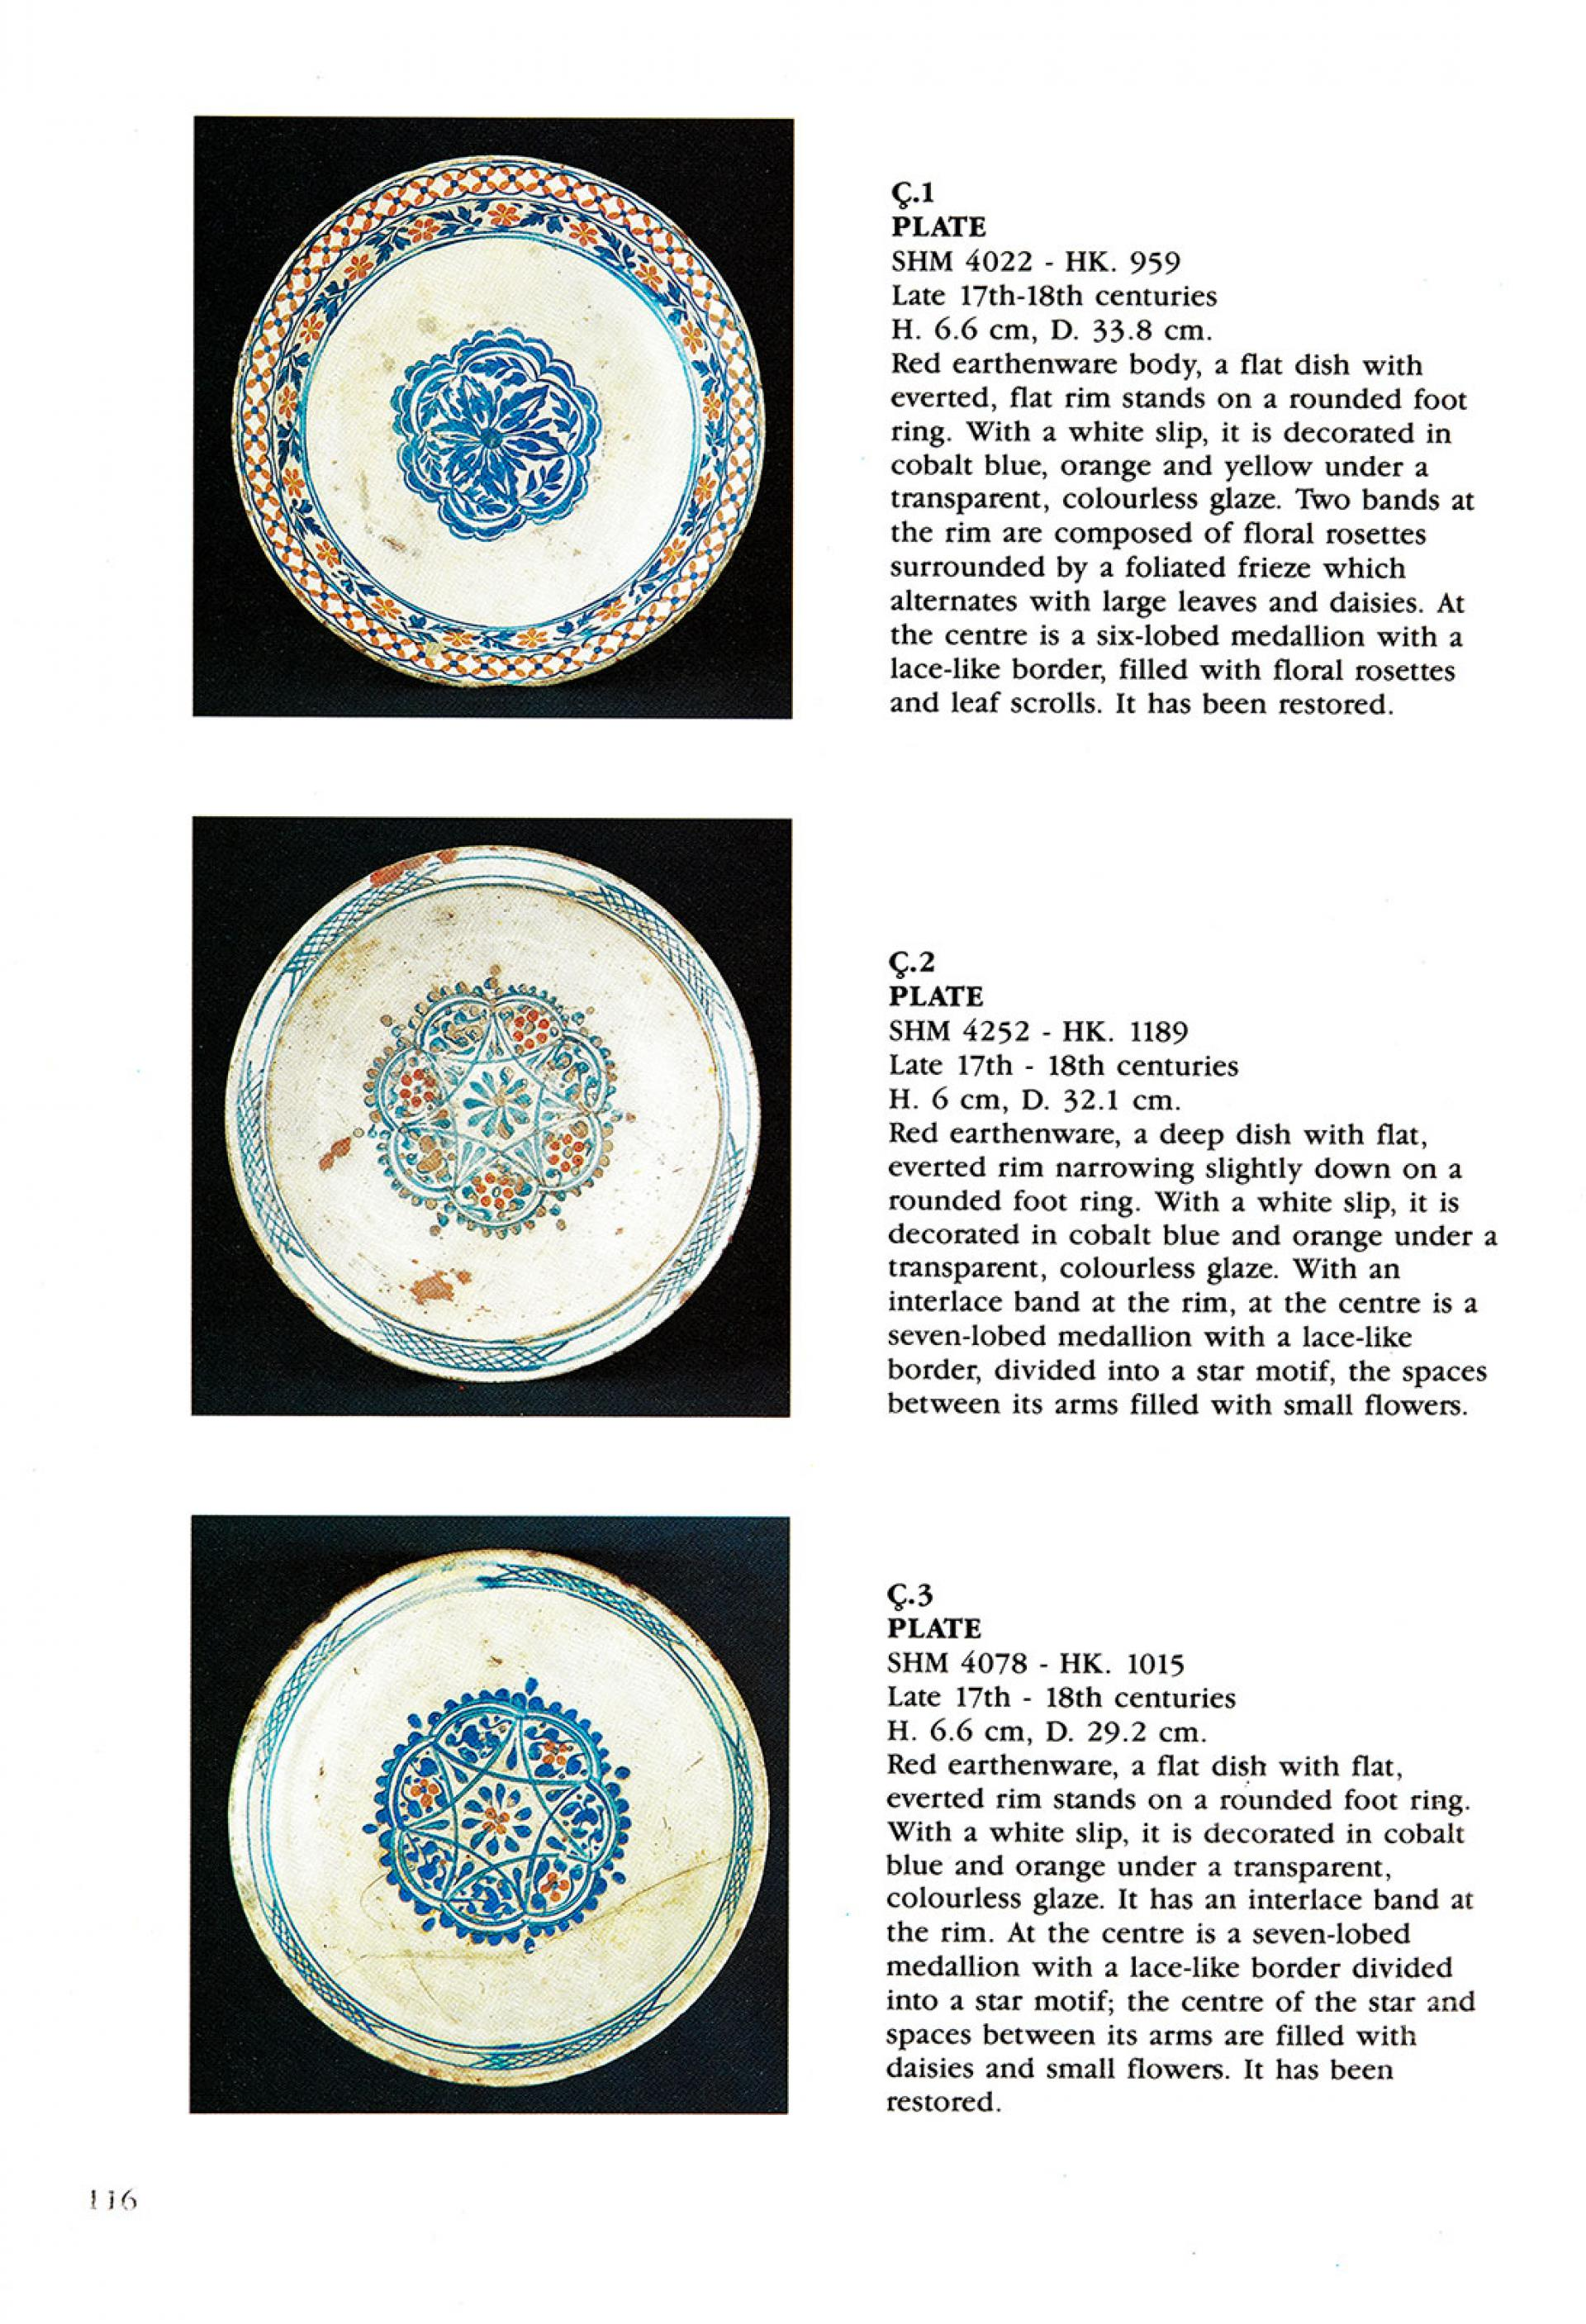 Turkish Tiles and Ceramics - KİTAPLAR - Sadberk Hanım Müzesi